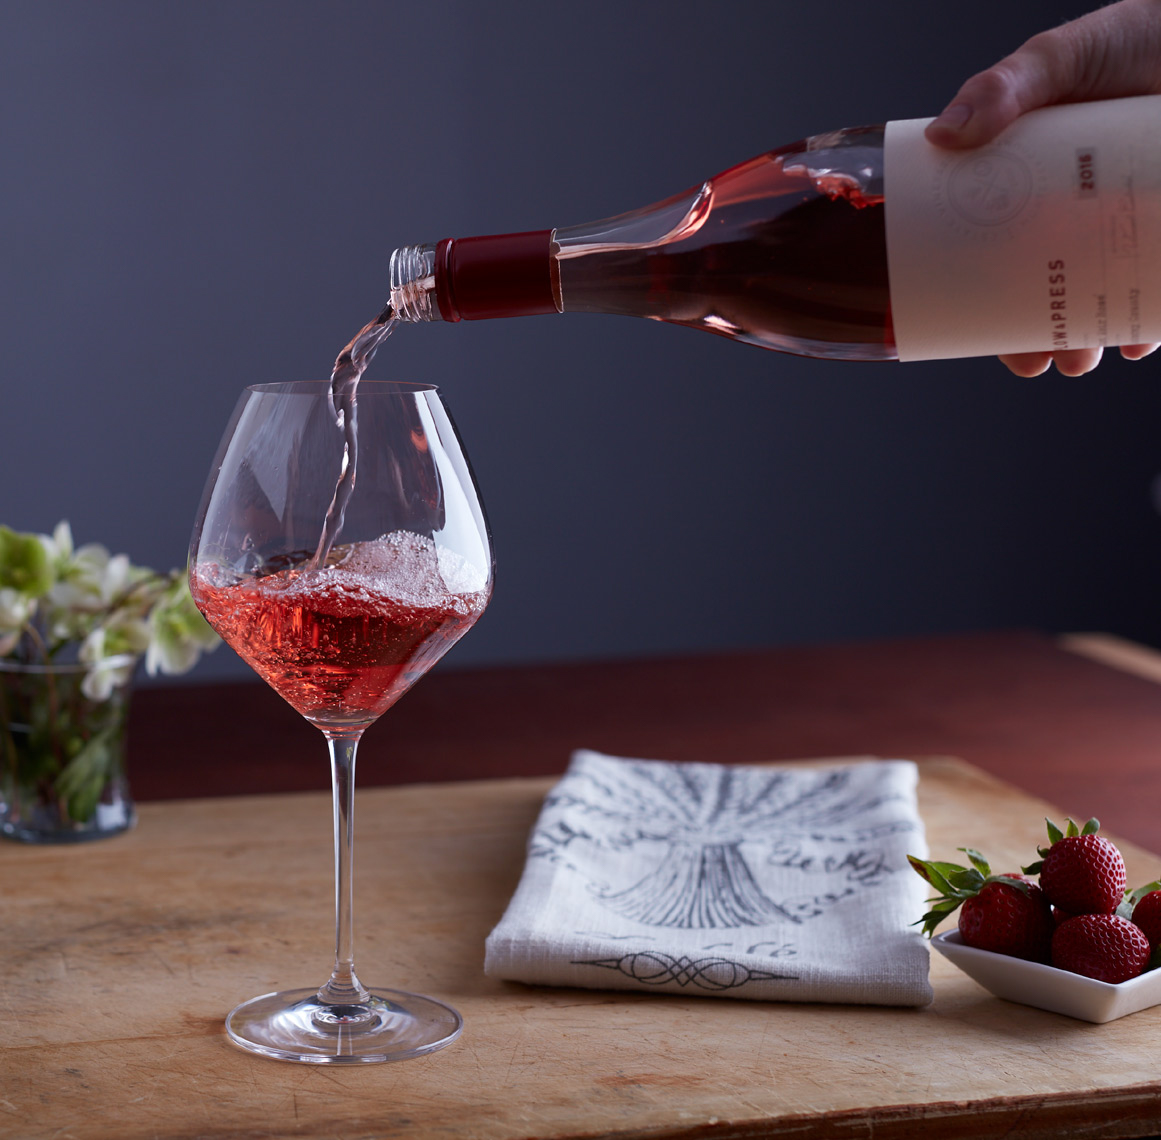 bottle pouring rose wine into a glass with strawberries and a dish towel San Francisco food photographer